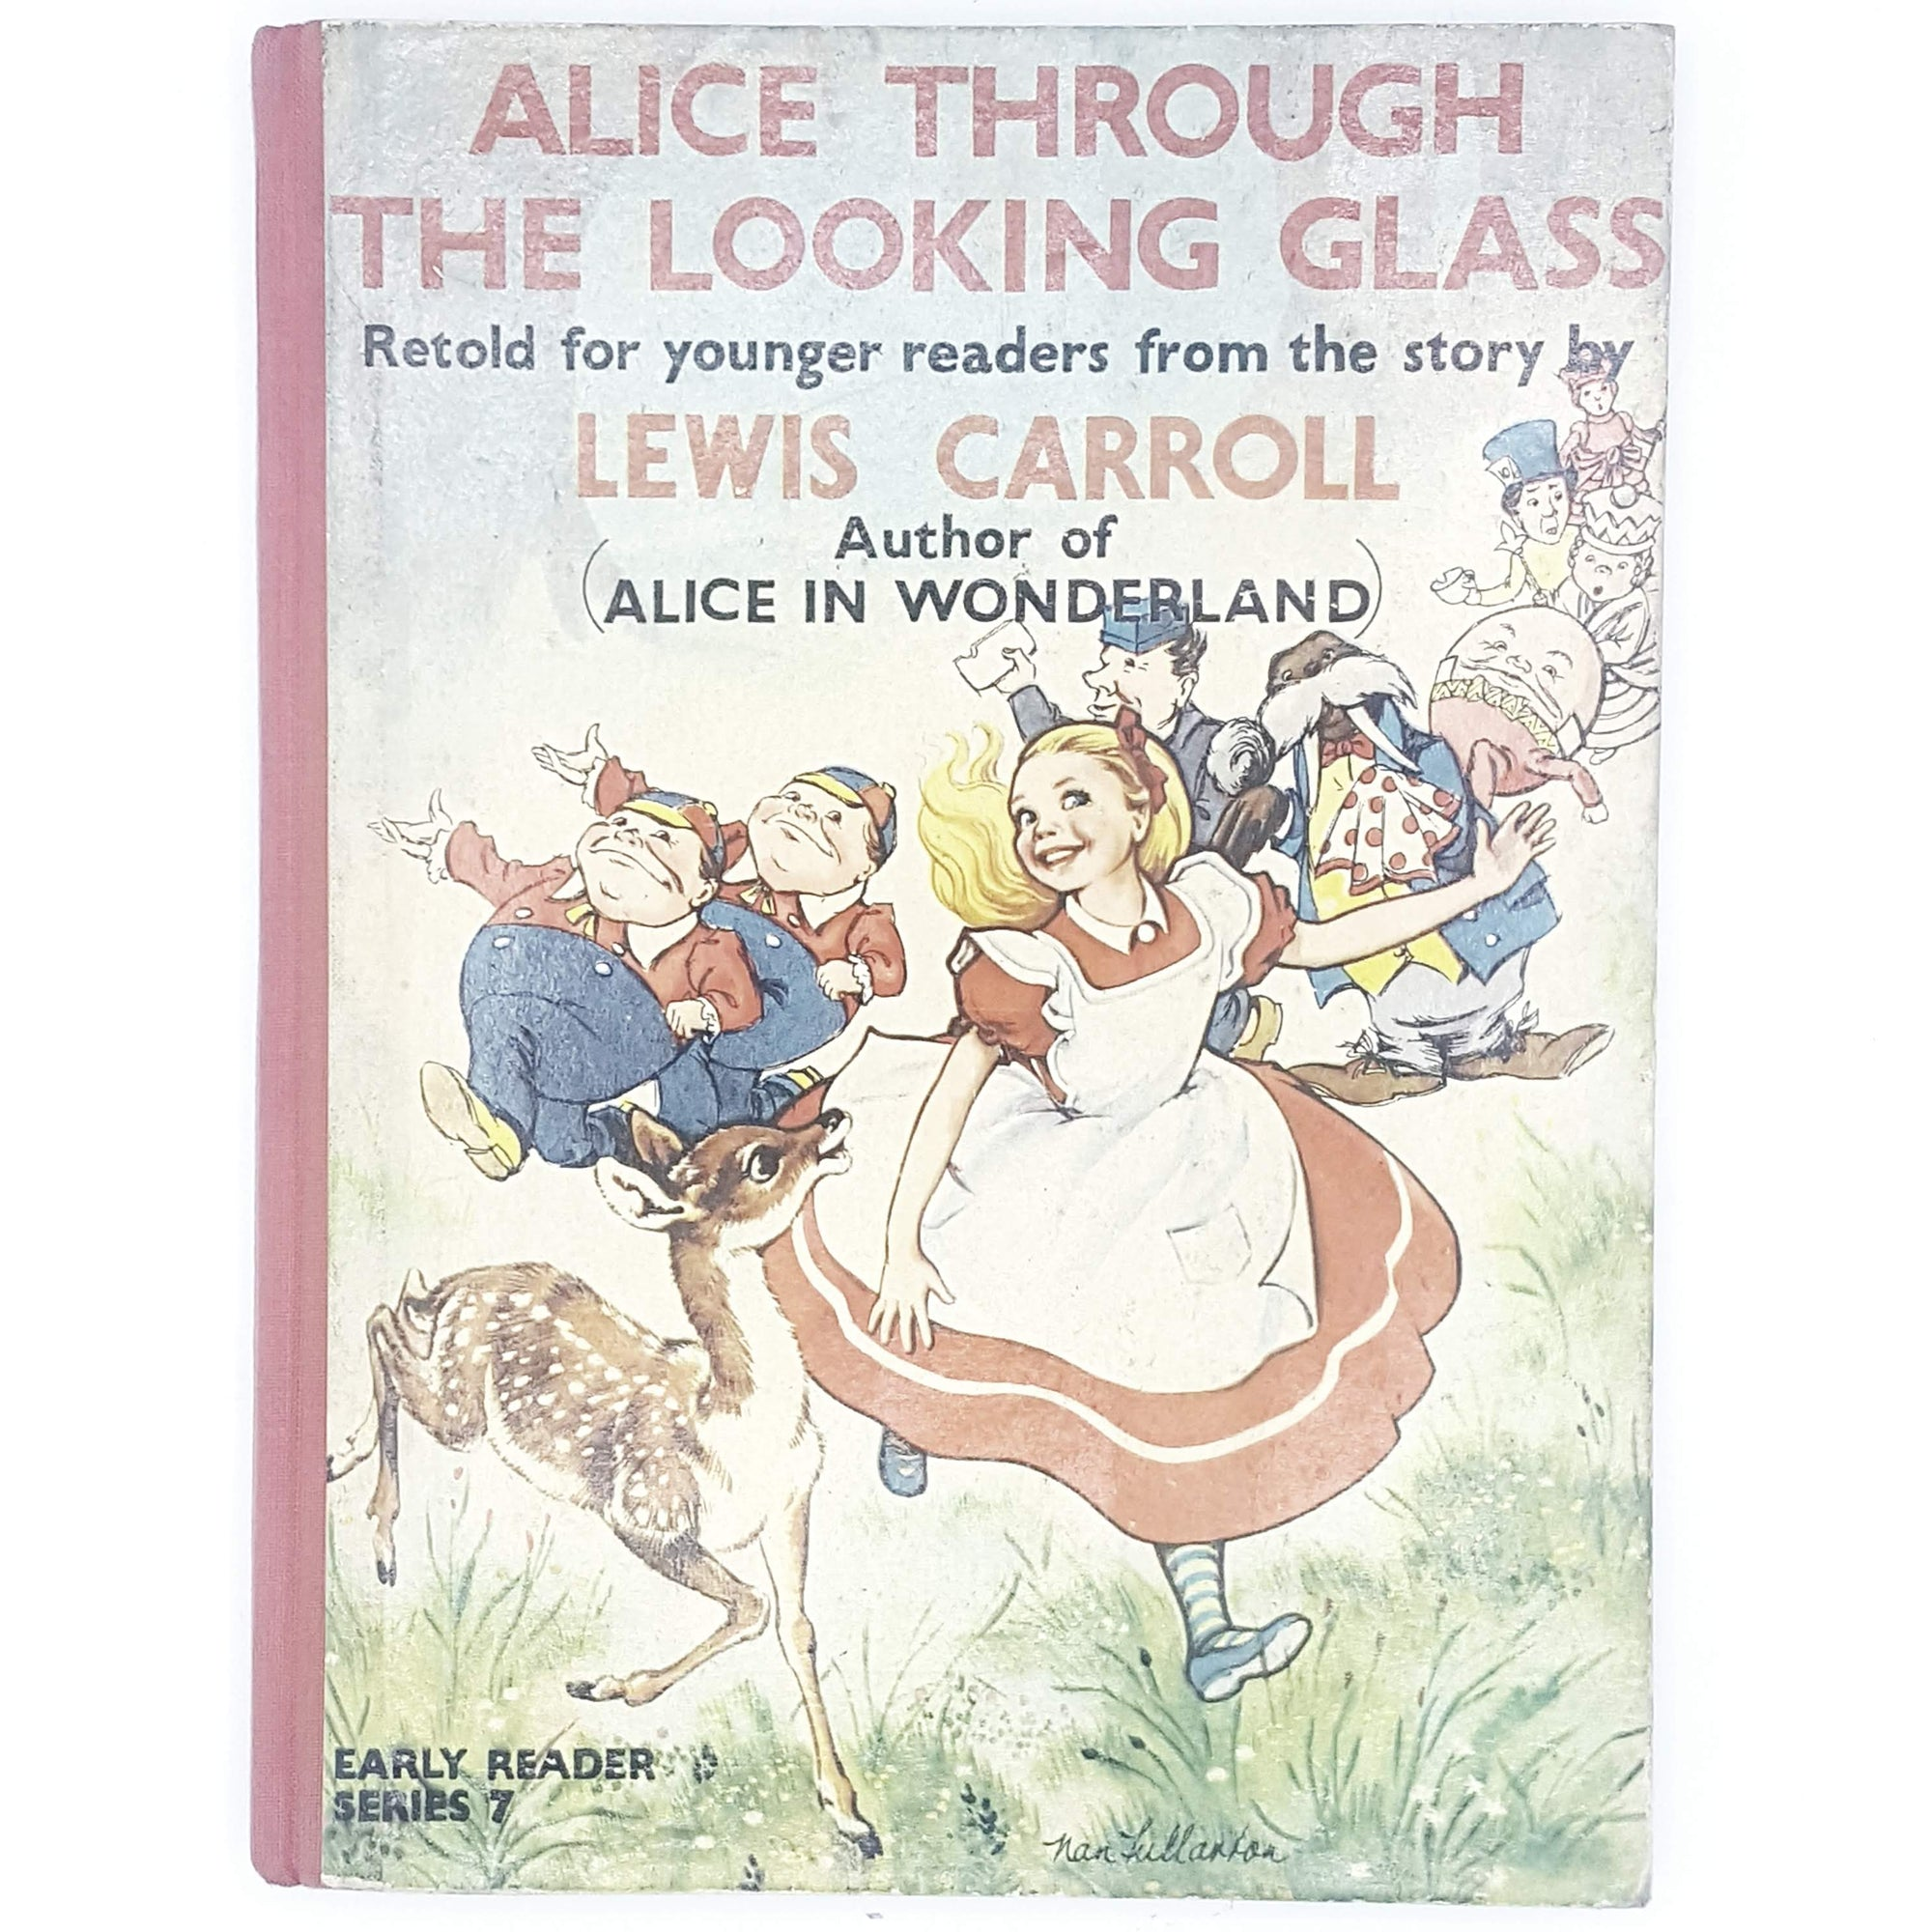 Lewis Carroll's Alice Through the Looking Glass illustrated